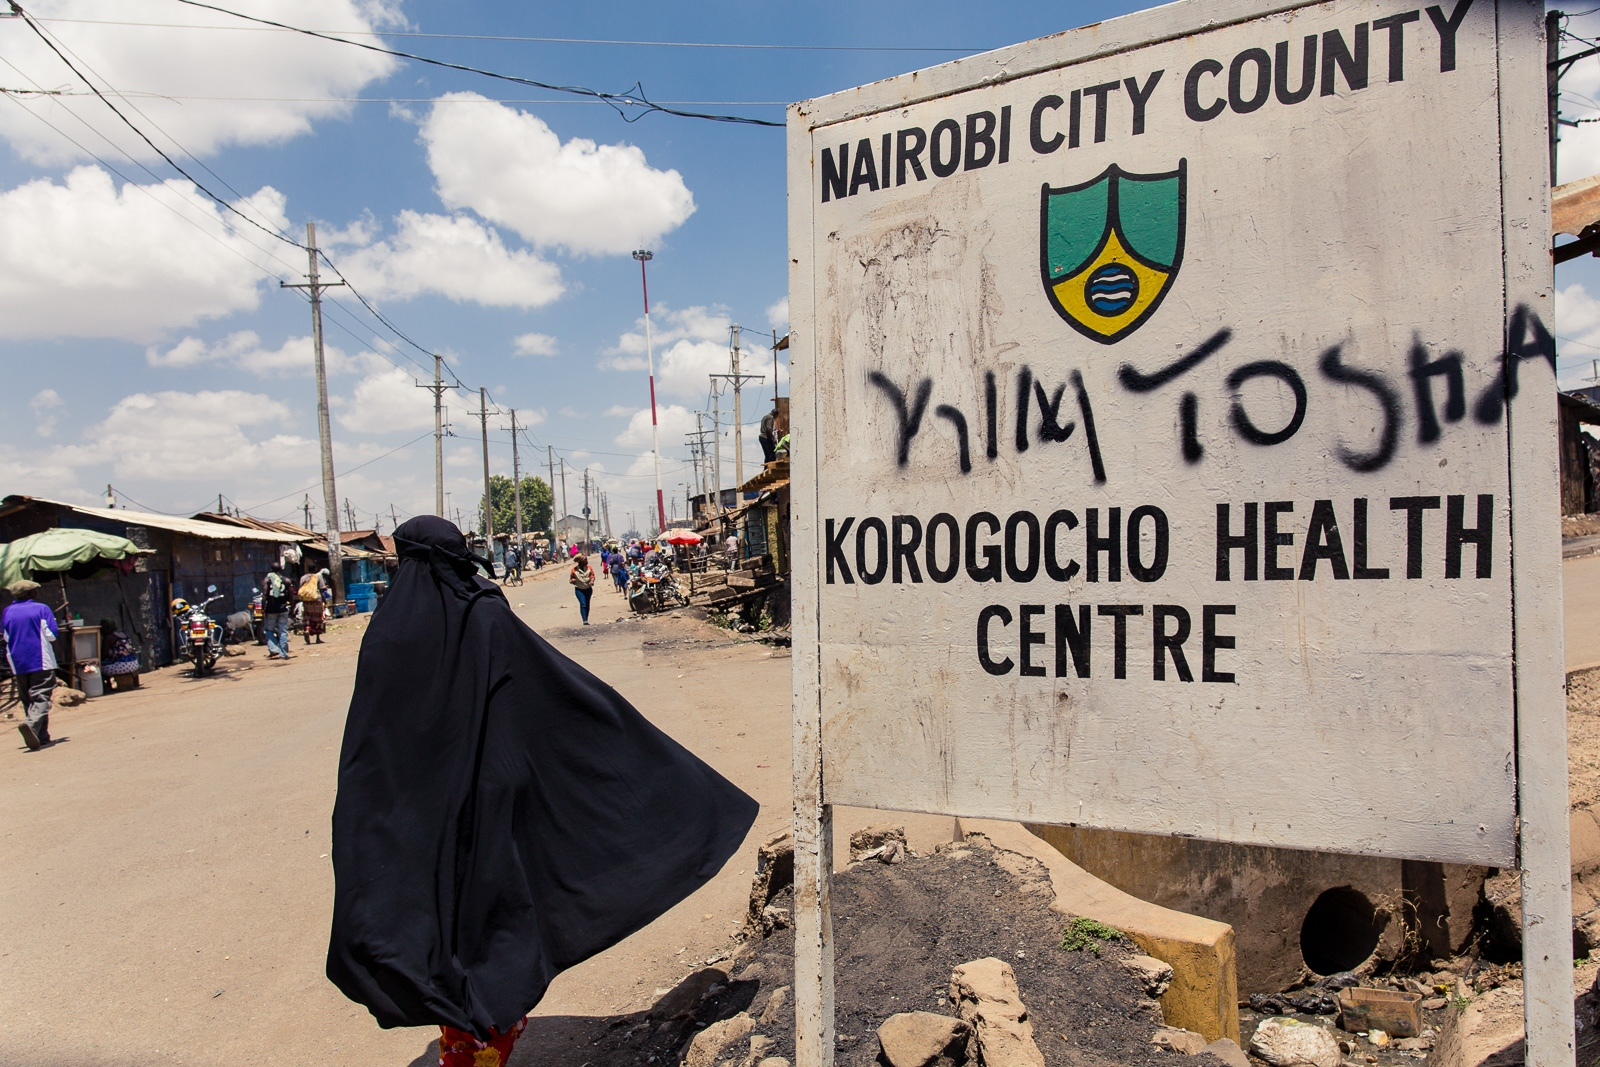 Nairobi, KENYA, February 28, 2017: A woman walks along a street in the Korogocho township, where elderly ladies have been a target of sexual violence, as a superstition persists, which says that having sex with a grandmother will cure one from HIV and wash off all criminal sins.